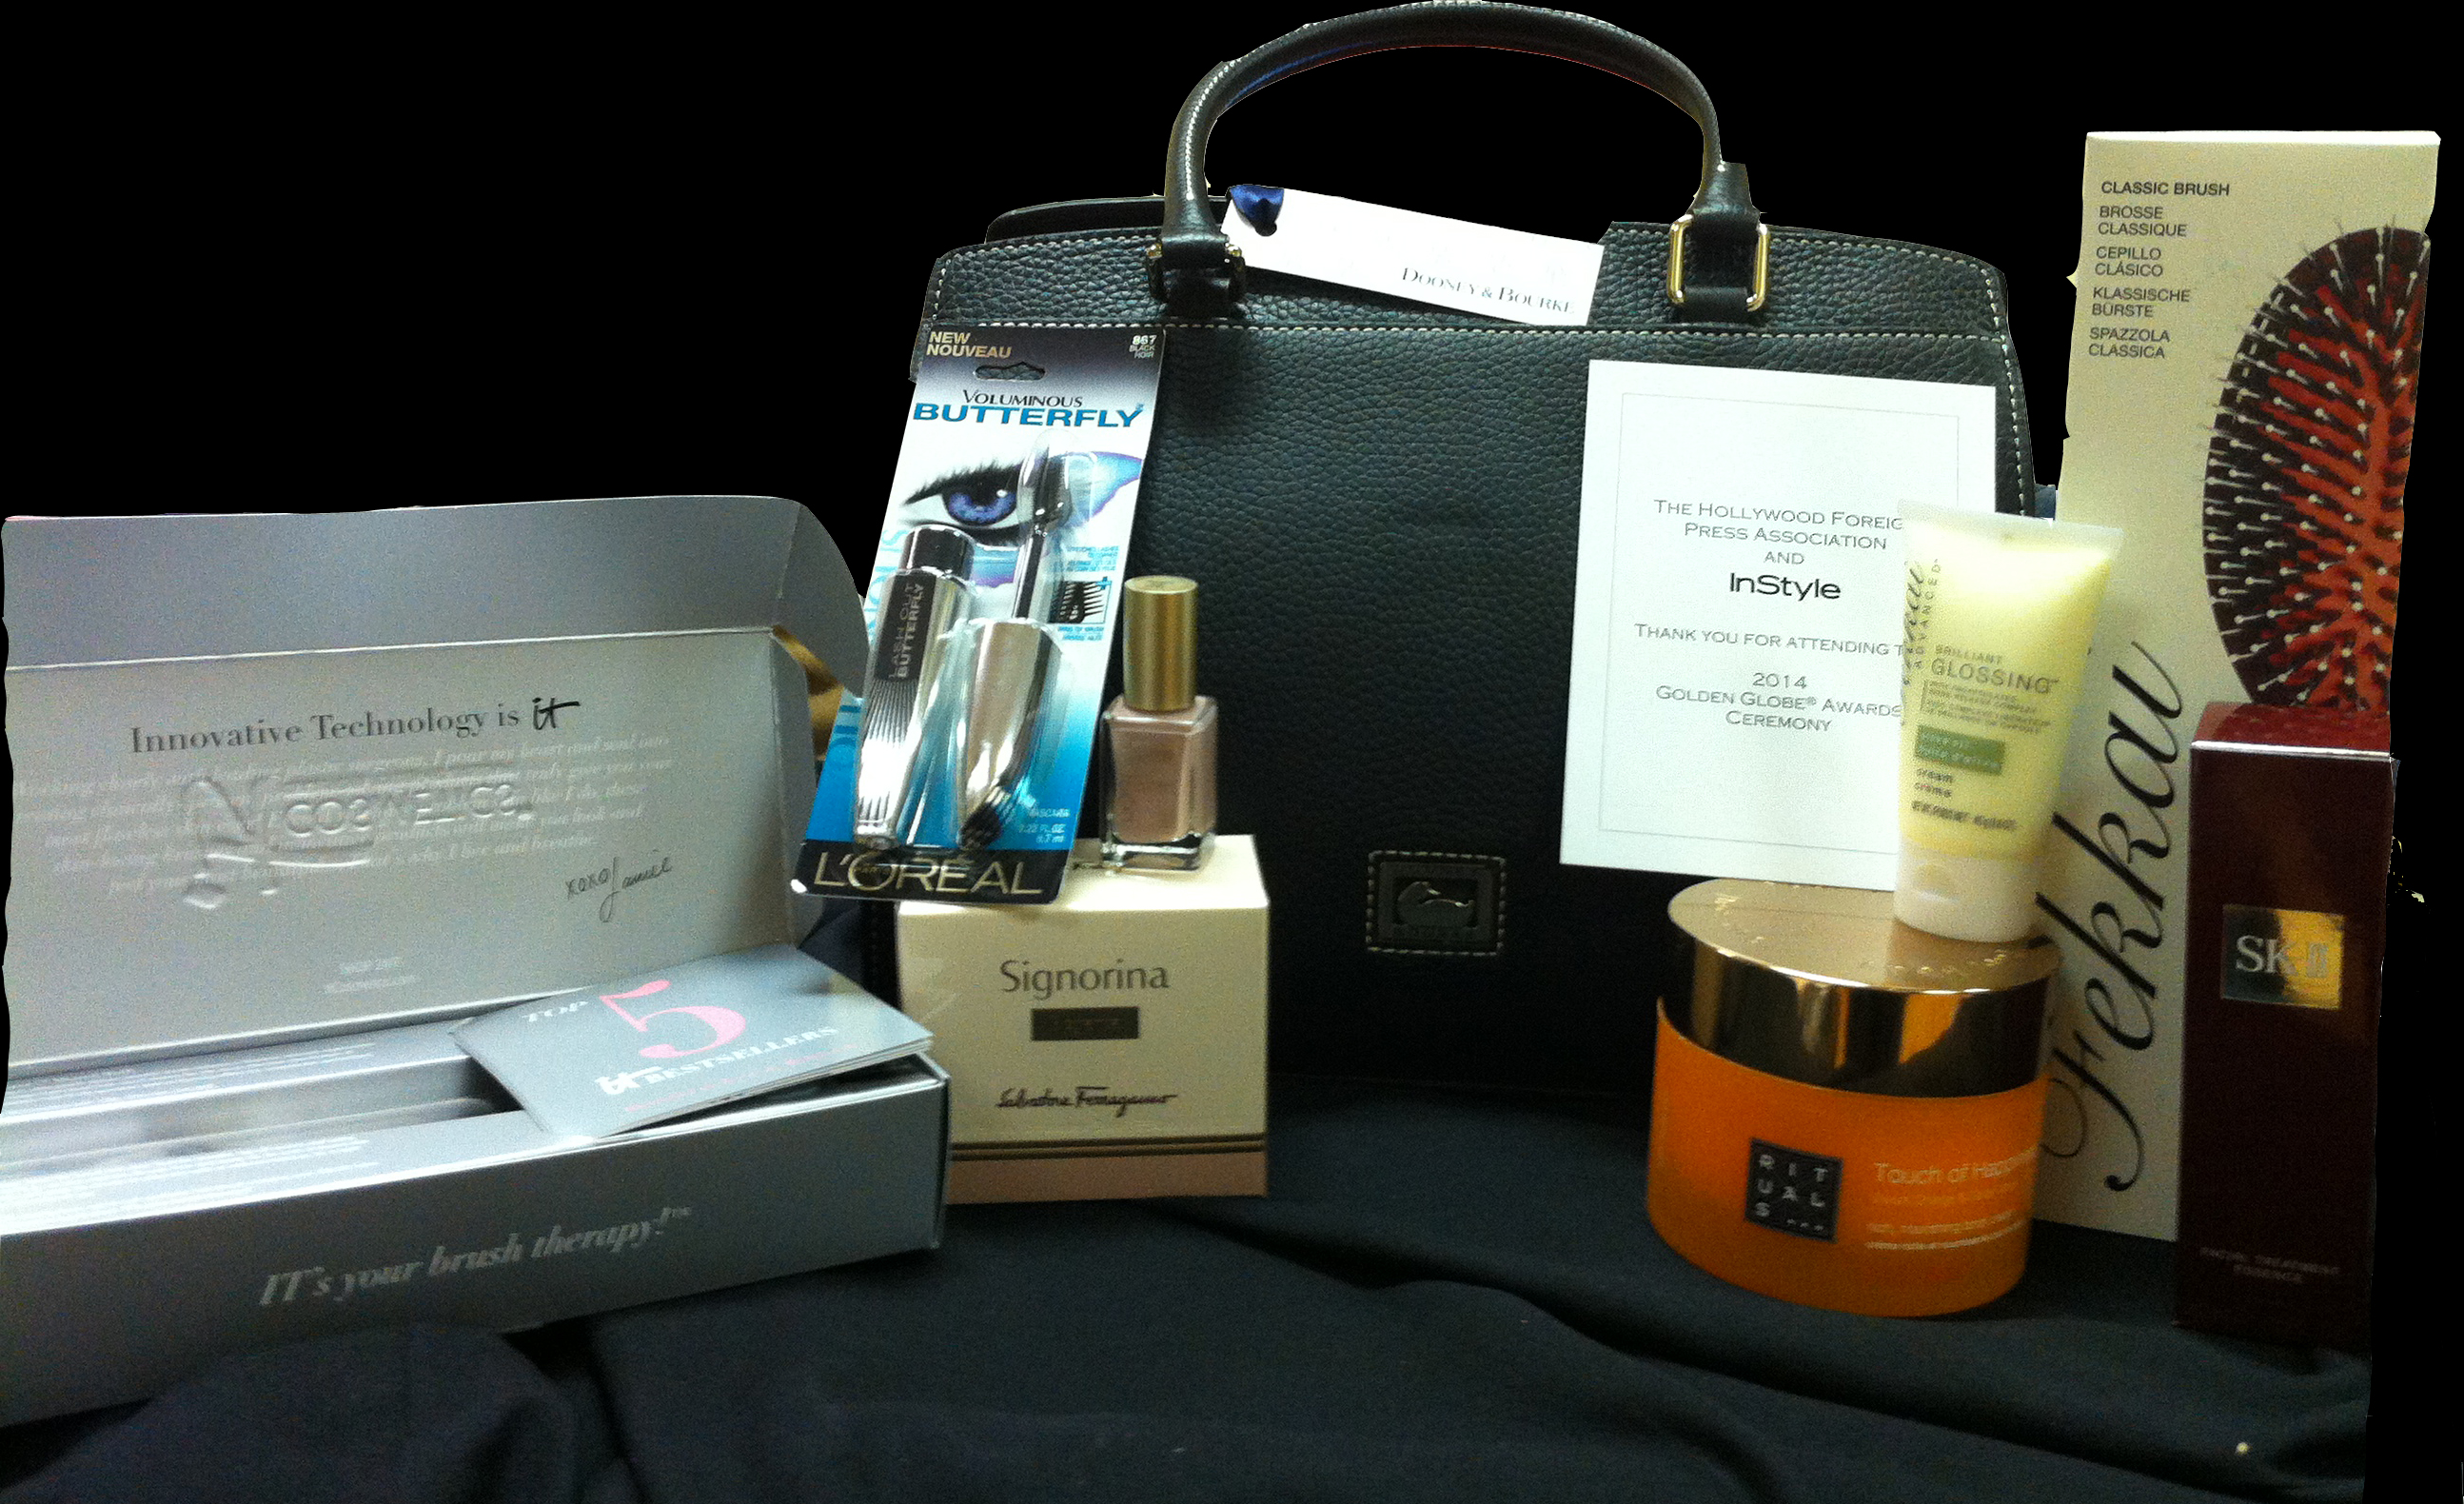 Enter now to win this Golden Globes 2014 celebrity gift bag!